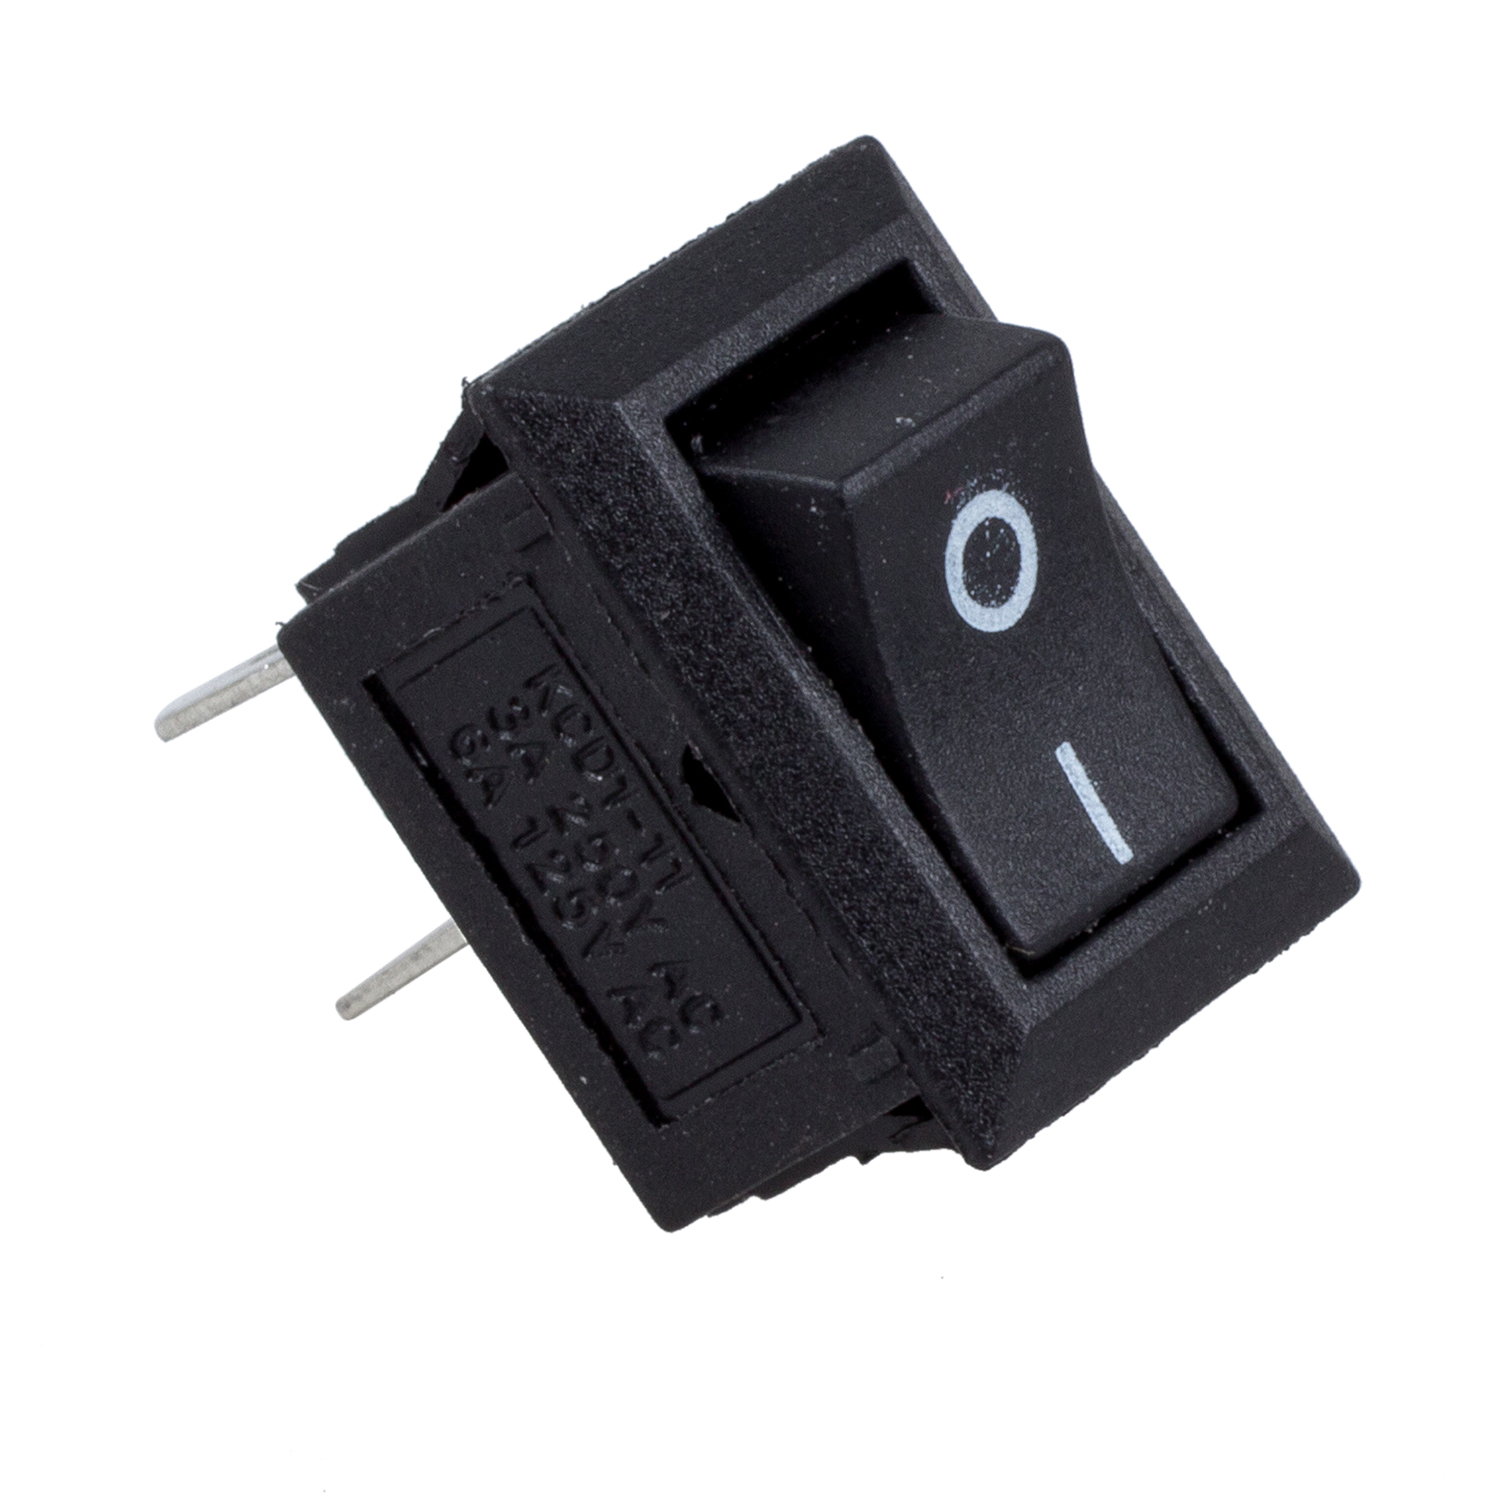 High Quality 5Pcs/Lot 2 Pin Snap-in On/Off Position Snap Boat Button Switch 12V/110V/250V 5pcs black push button mini switch 6a 10a 250v kcd1 101 2pin snap in on off rocker switch 21 15mm